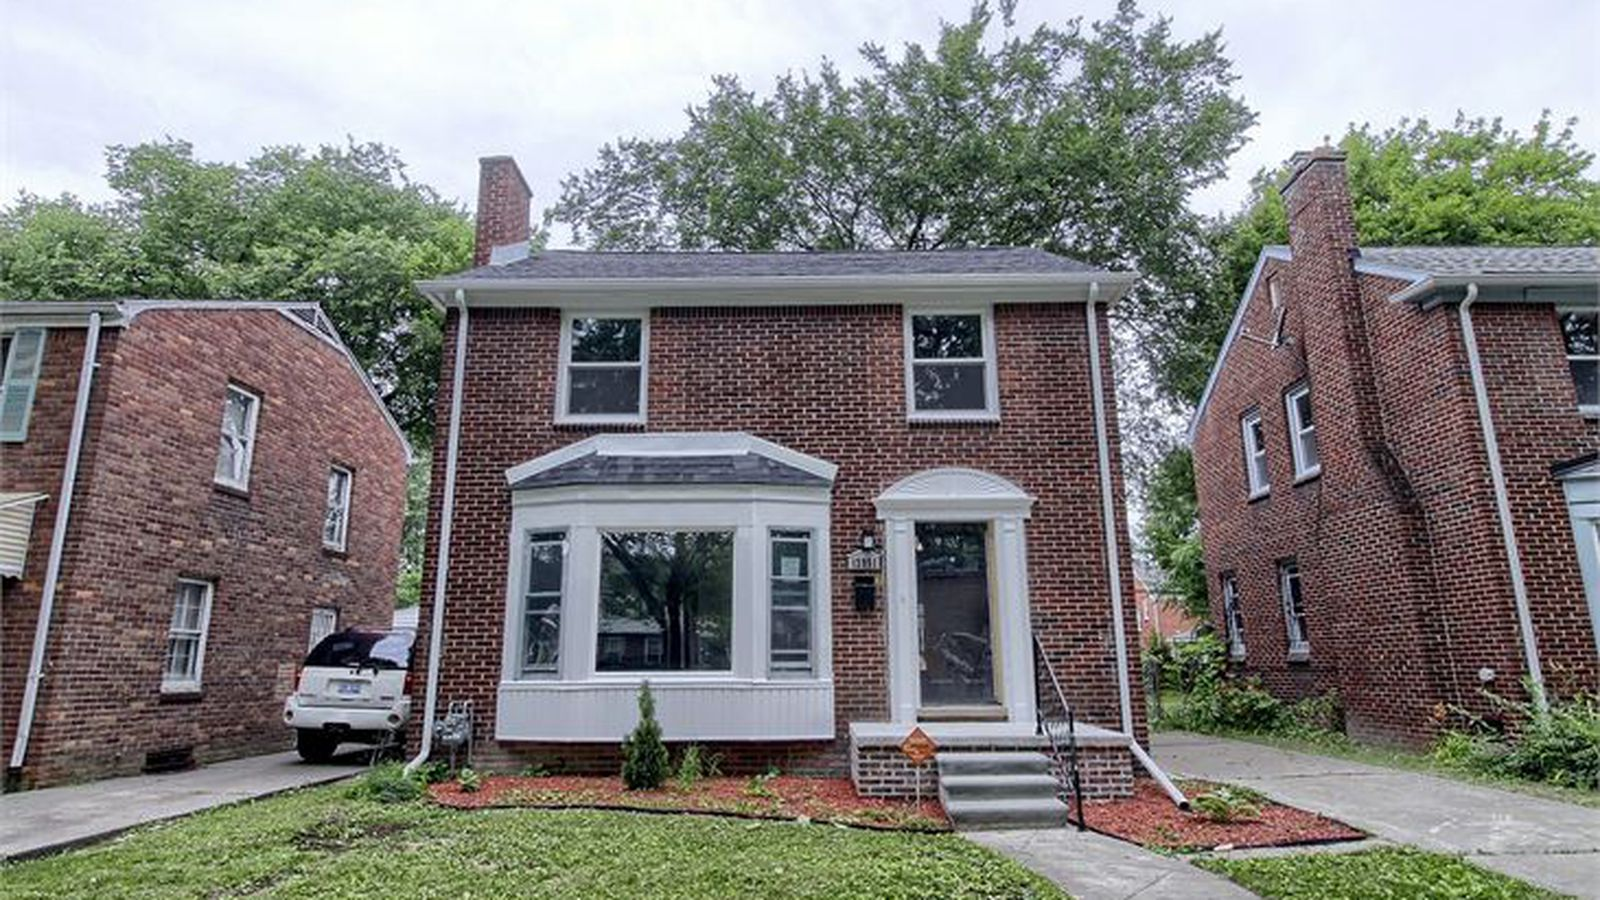 3 Bedroom Houses For Rent In Chicago For 100k A Rehabbed Amp Ready Grandmont Rosedale Home